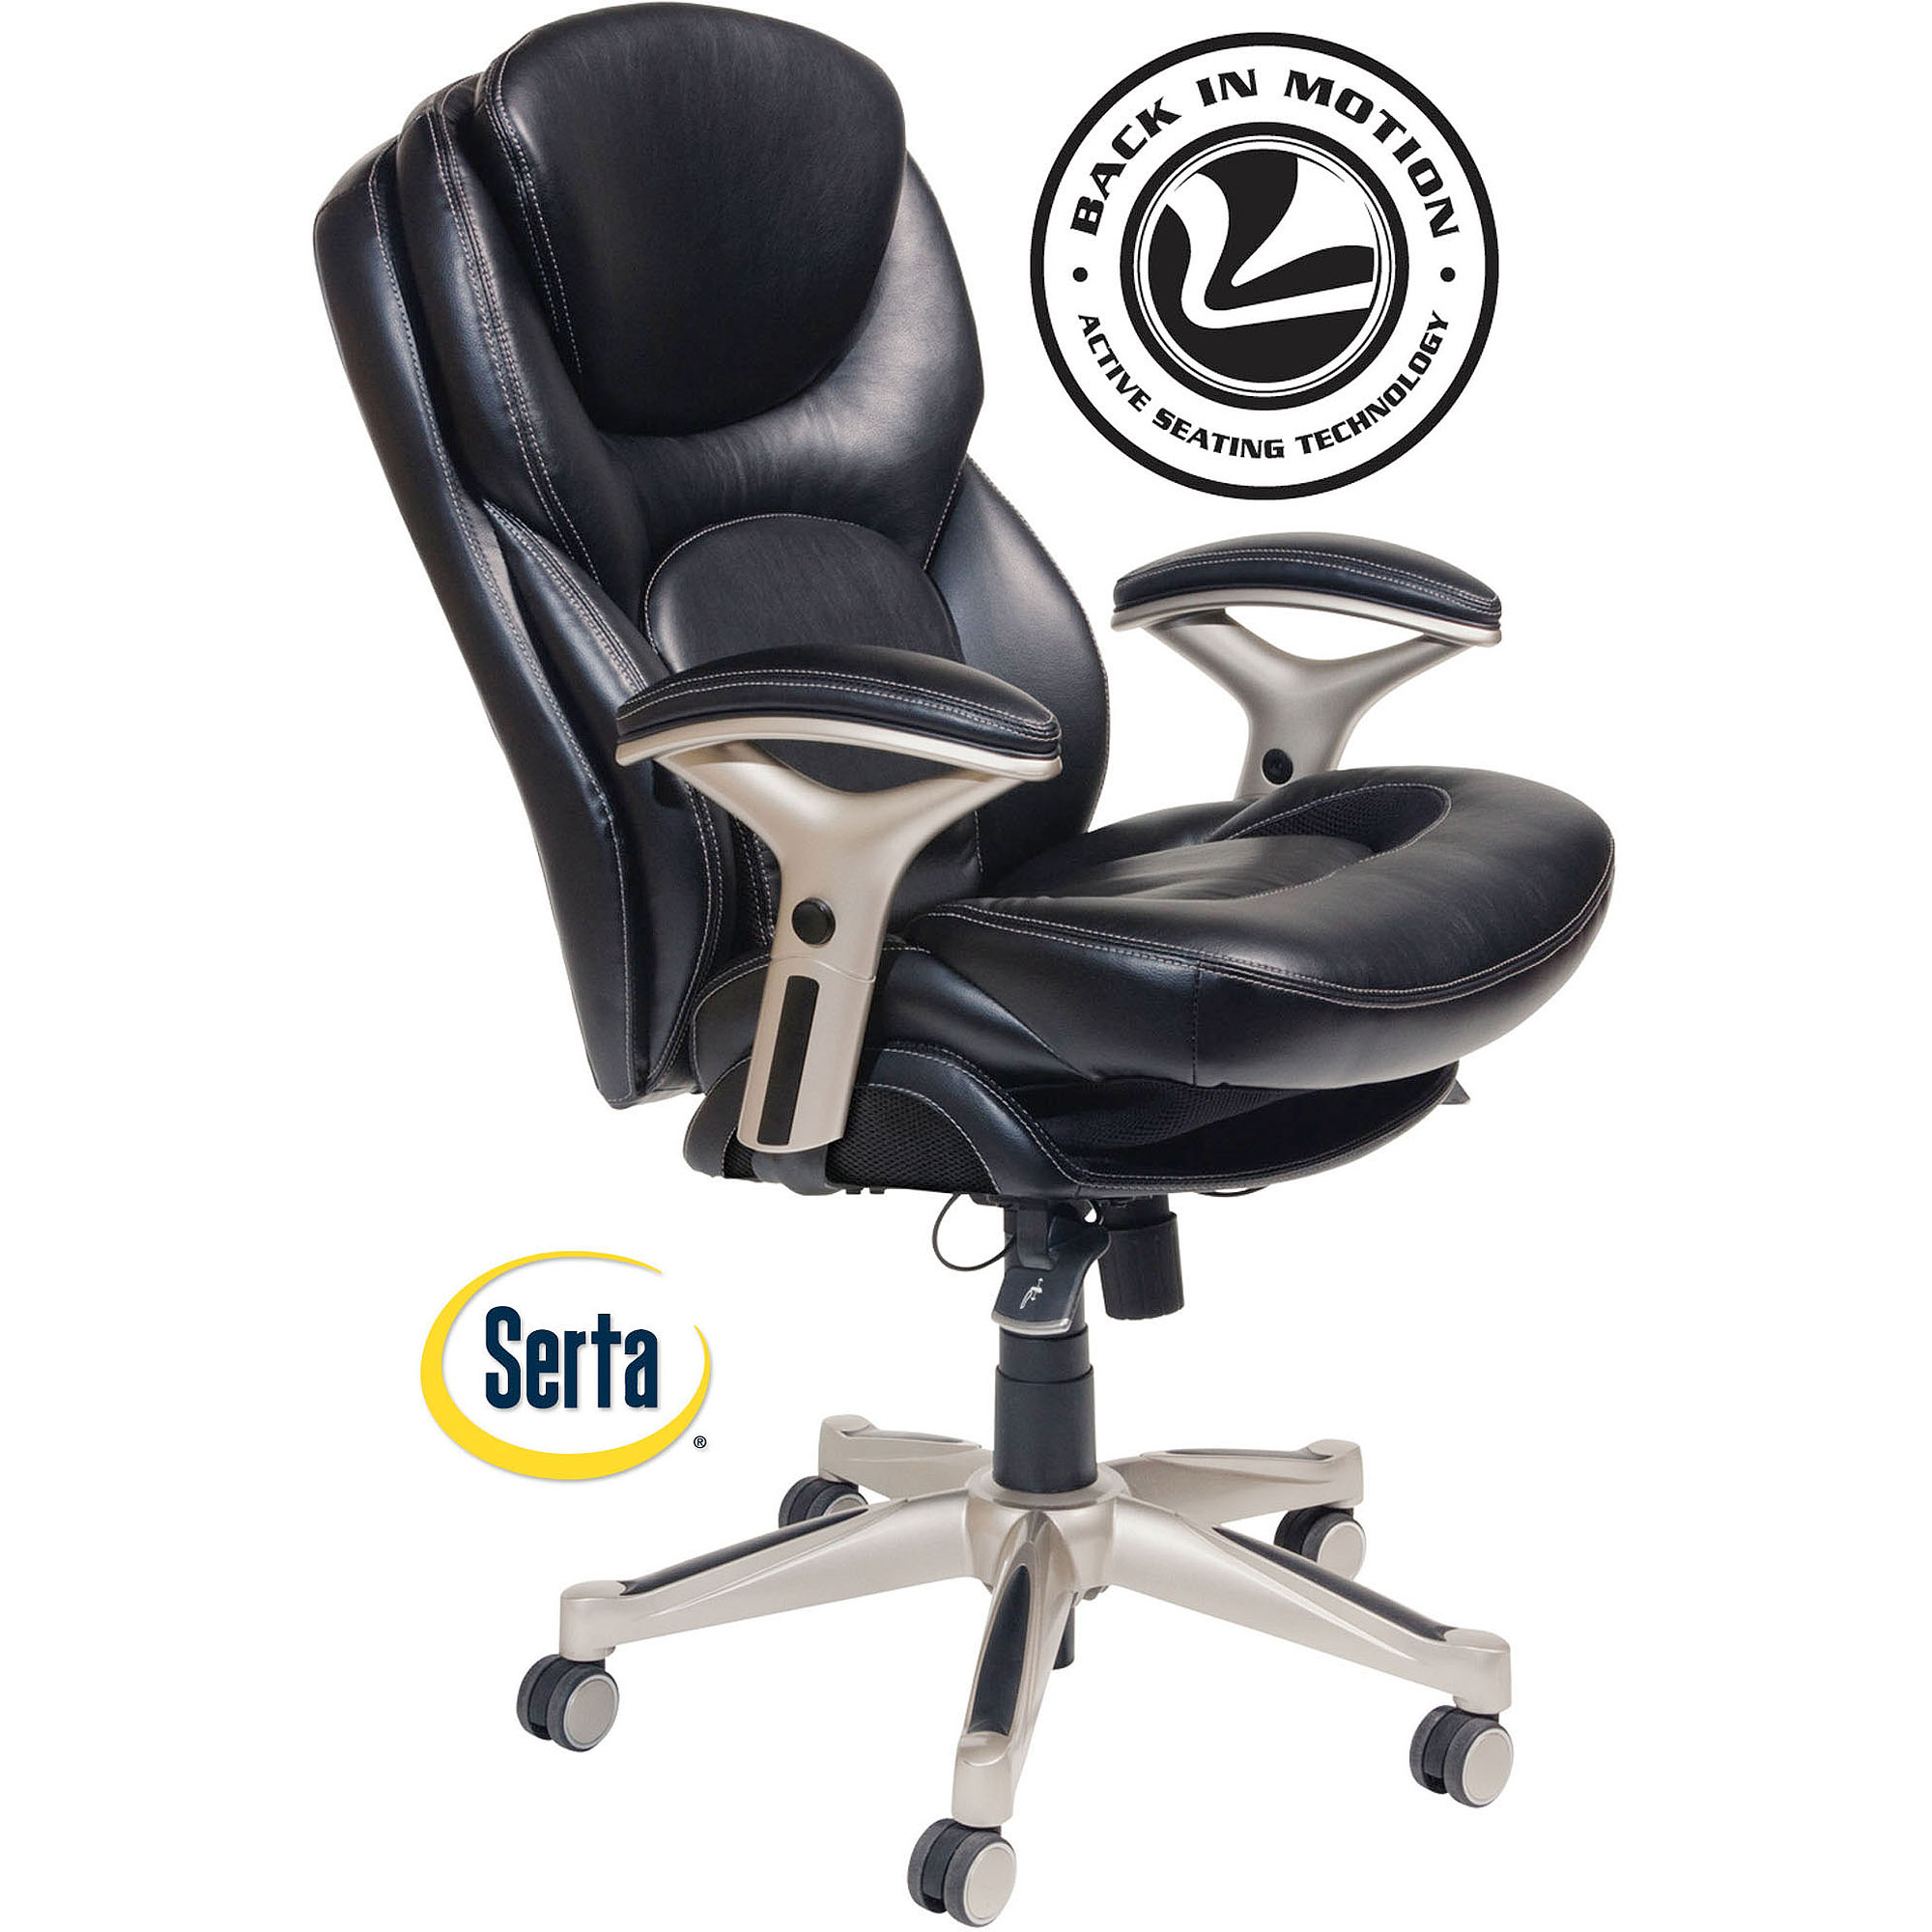 Serta Back in Motion fice Chair in Black Bonded Leather